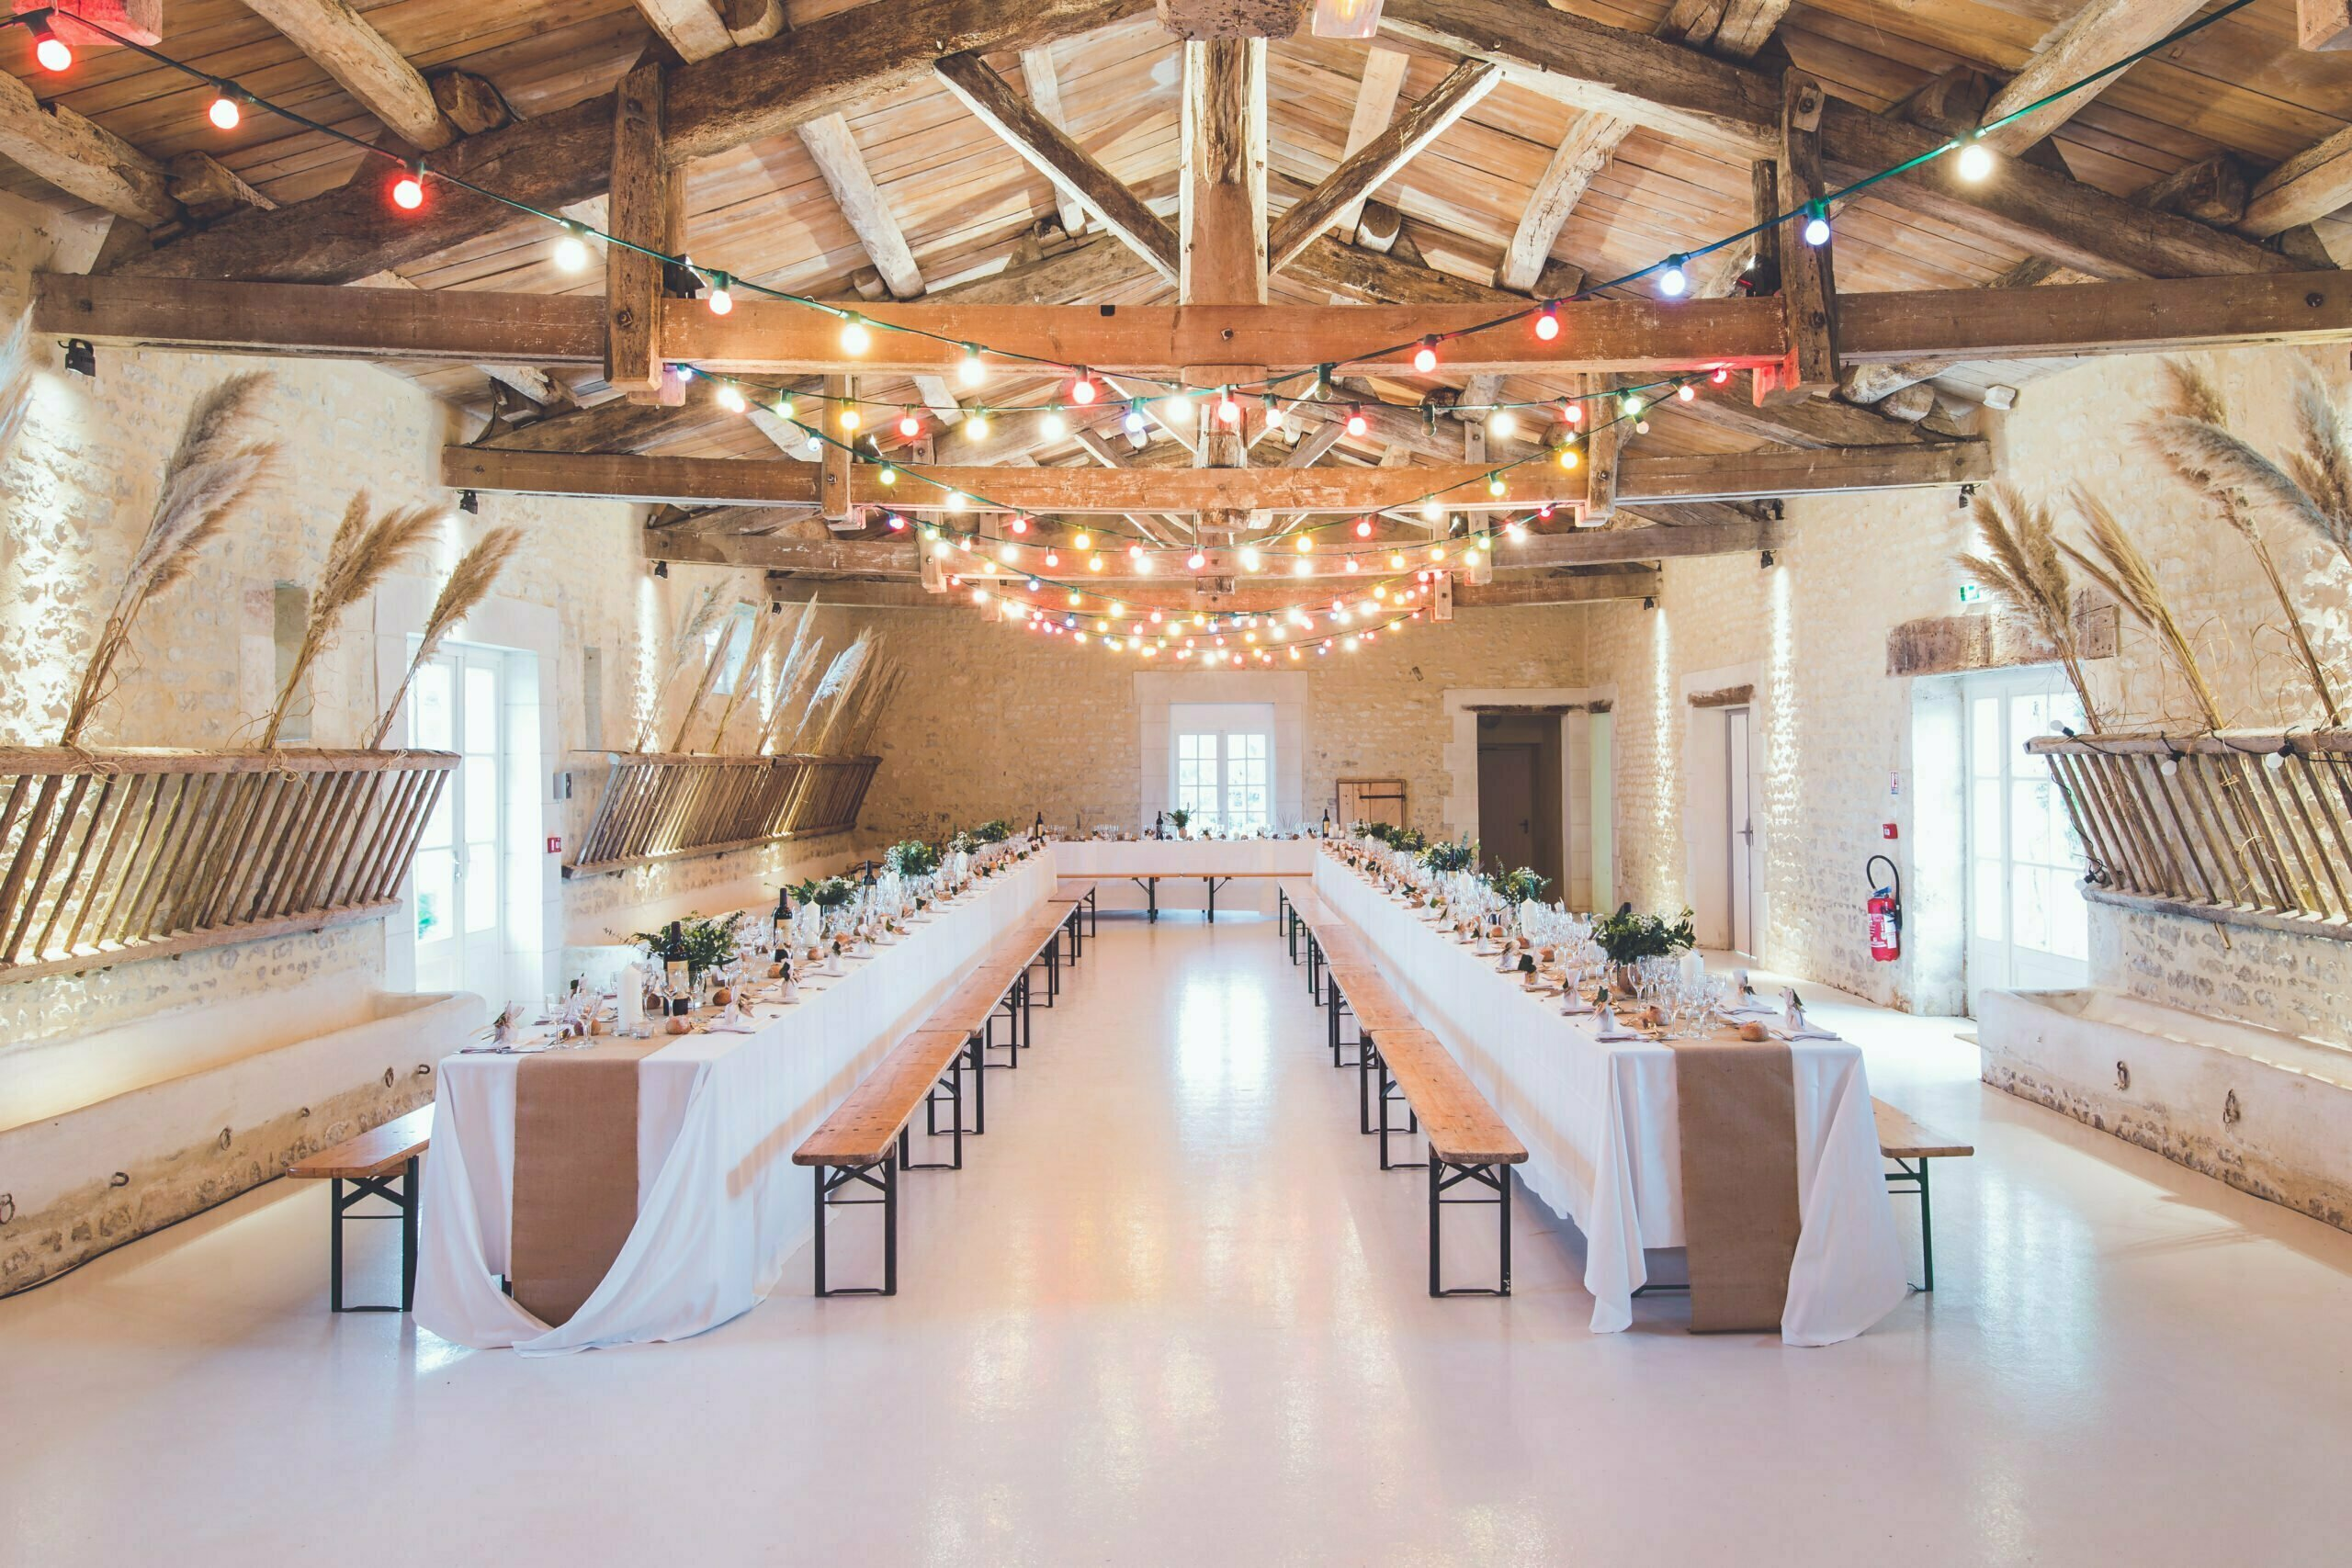 The Ultimate Guide to Decorating Your Wedding Venue